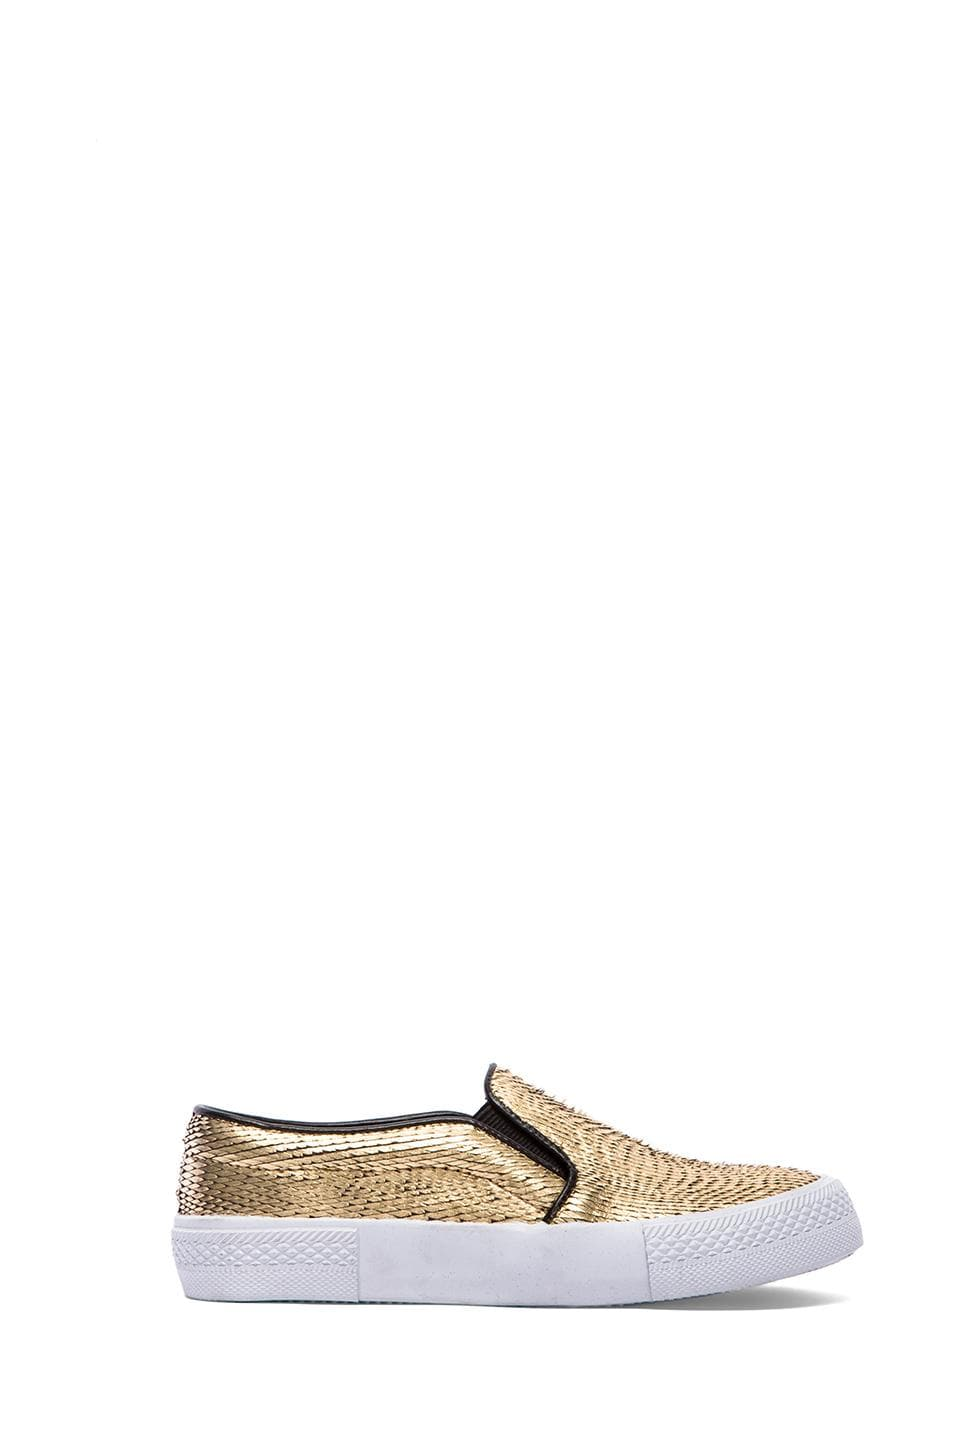 Steve Madden NYC Flat in Gold